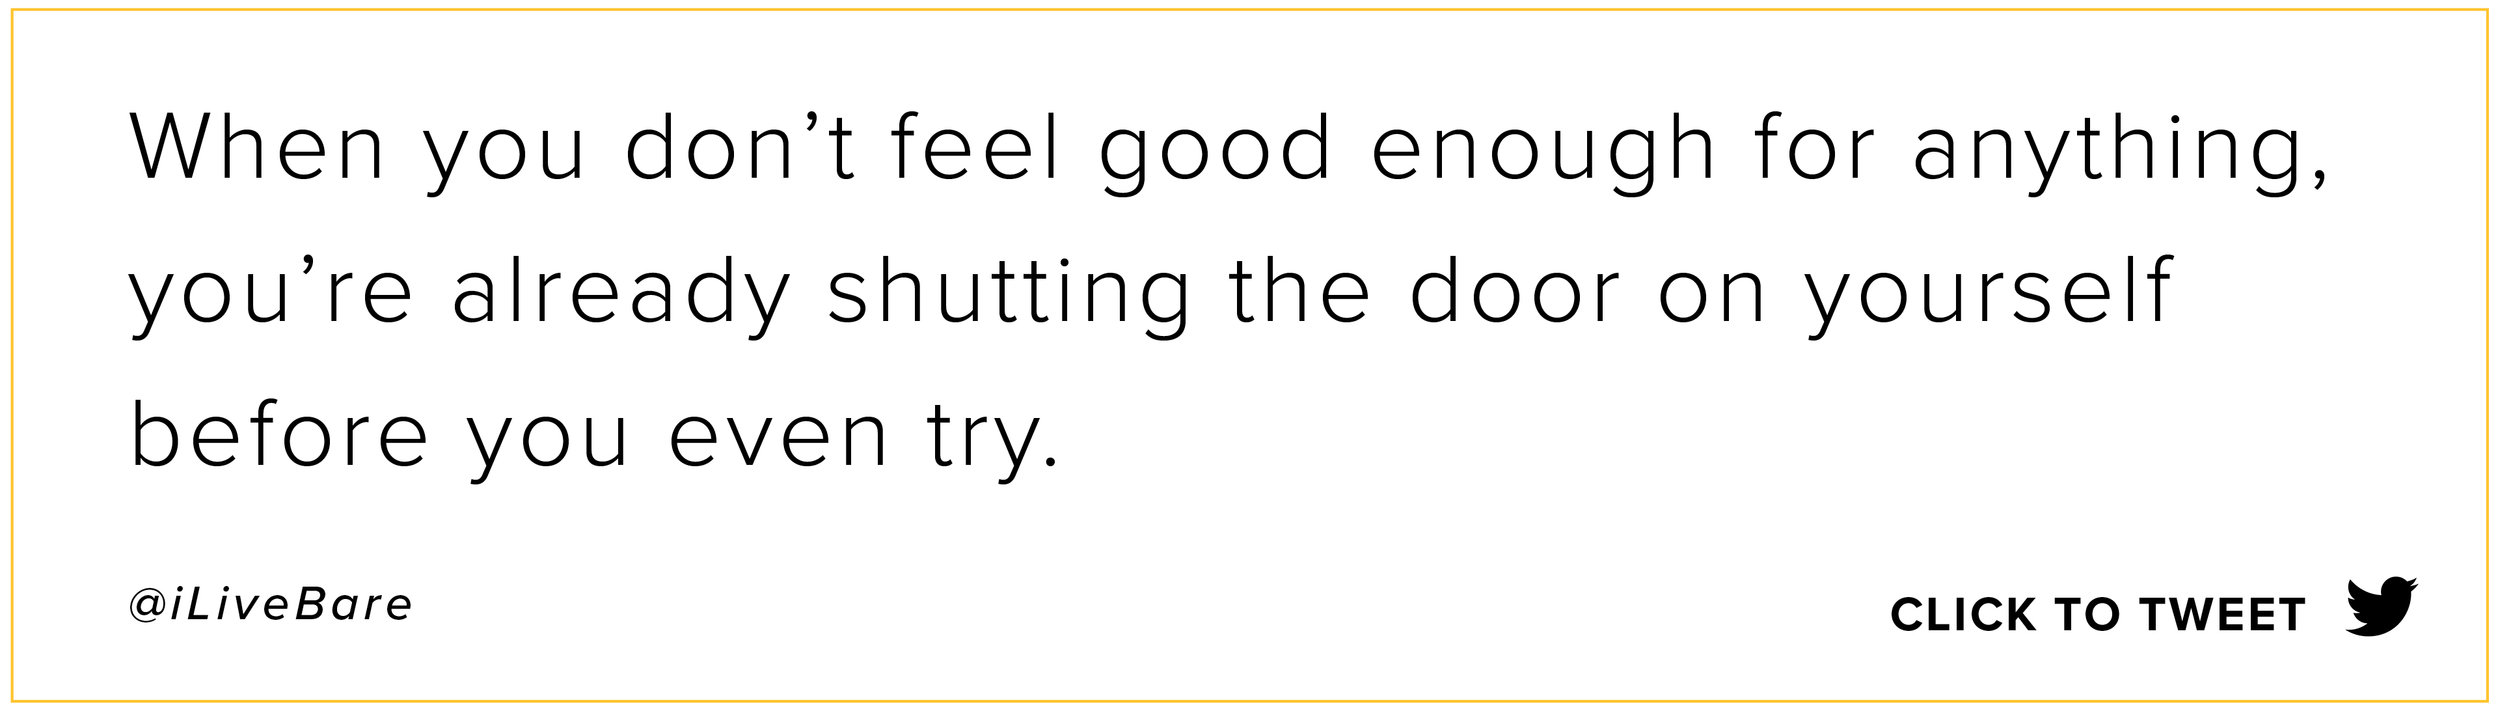 When you don't feel good enough for anything, you're already shutting the door on yourself before you even try.  @iLiveBare   Click to tweet here